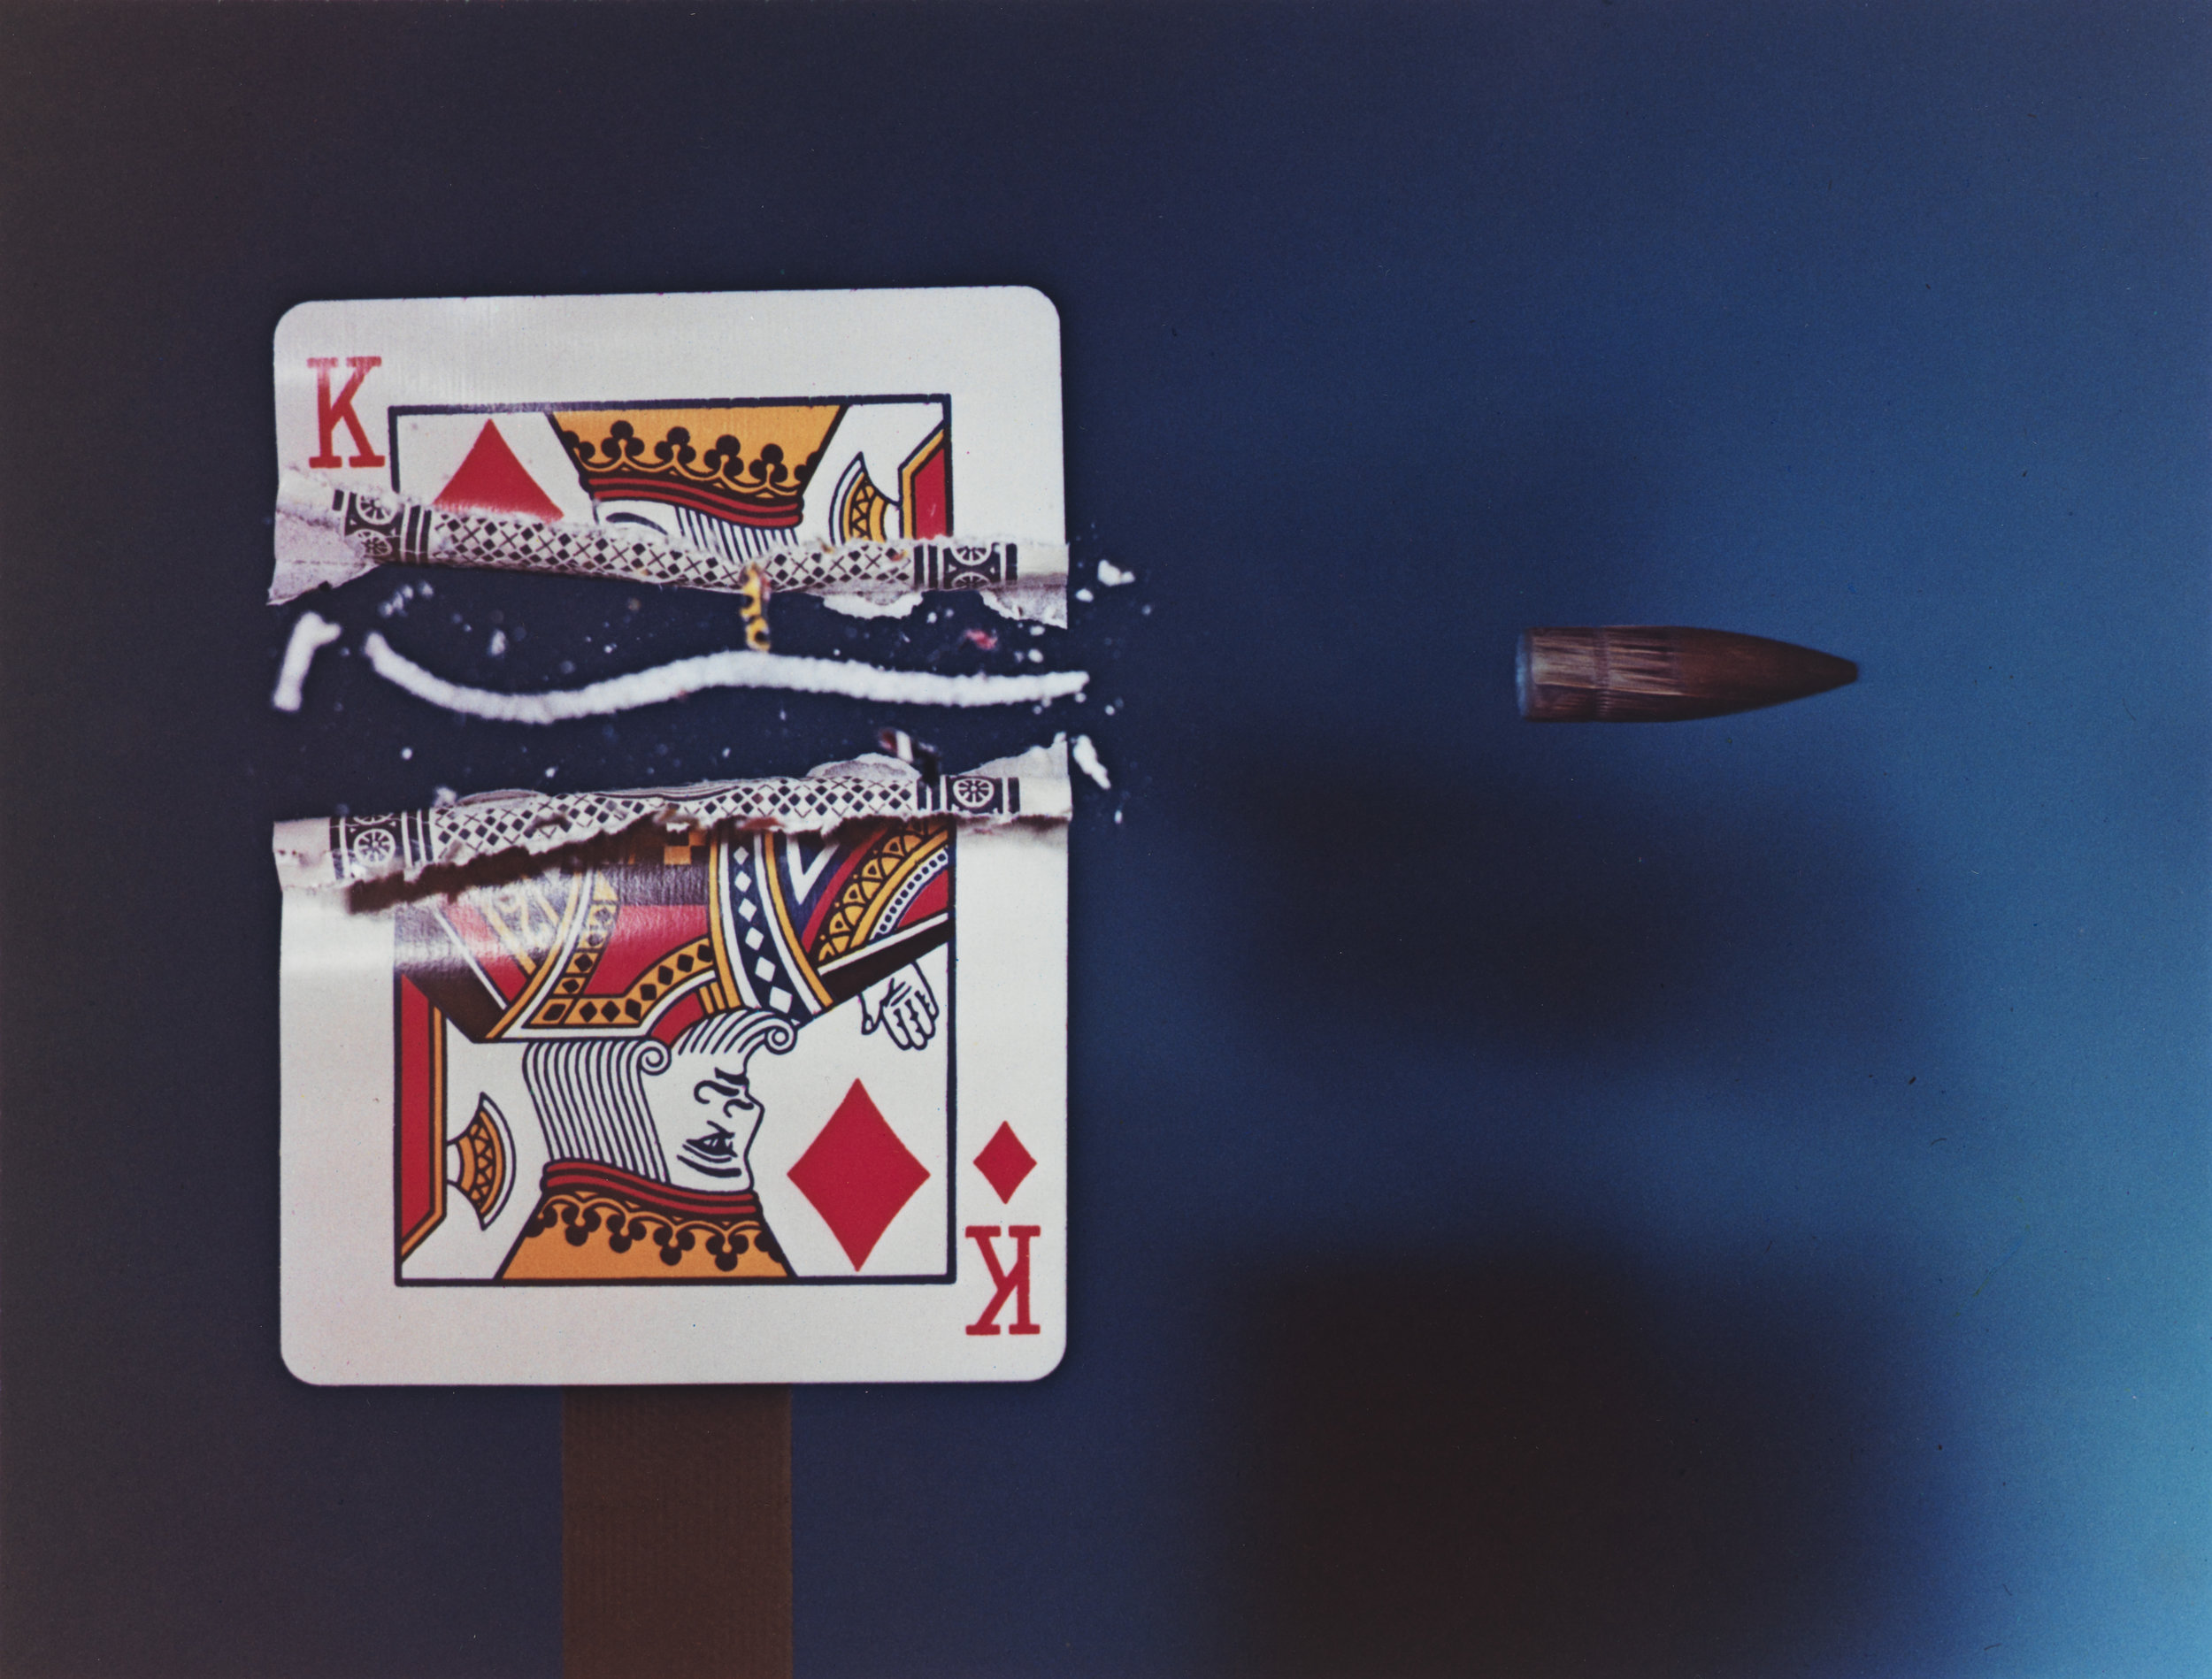 Harold Edgerton (1903-1990),  Cutting the Card Quickly , 1964, printed 1987. Edition 55/125. Dye transfer print: sheet, 9 × 10 15/16 in. (22.9 × 27.8 cm); image, 7 5/8 × 10 in. (19.4 × 25.4 cm). Whitney Museum of American Art, New York; gift of The Harold and Esther Edgerton Family Foundation 96.117.20. © 2010 MIT. Courtesy of MIT Museum